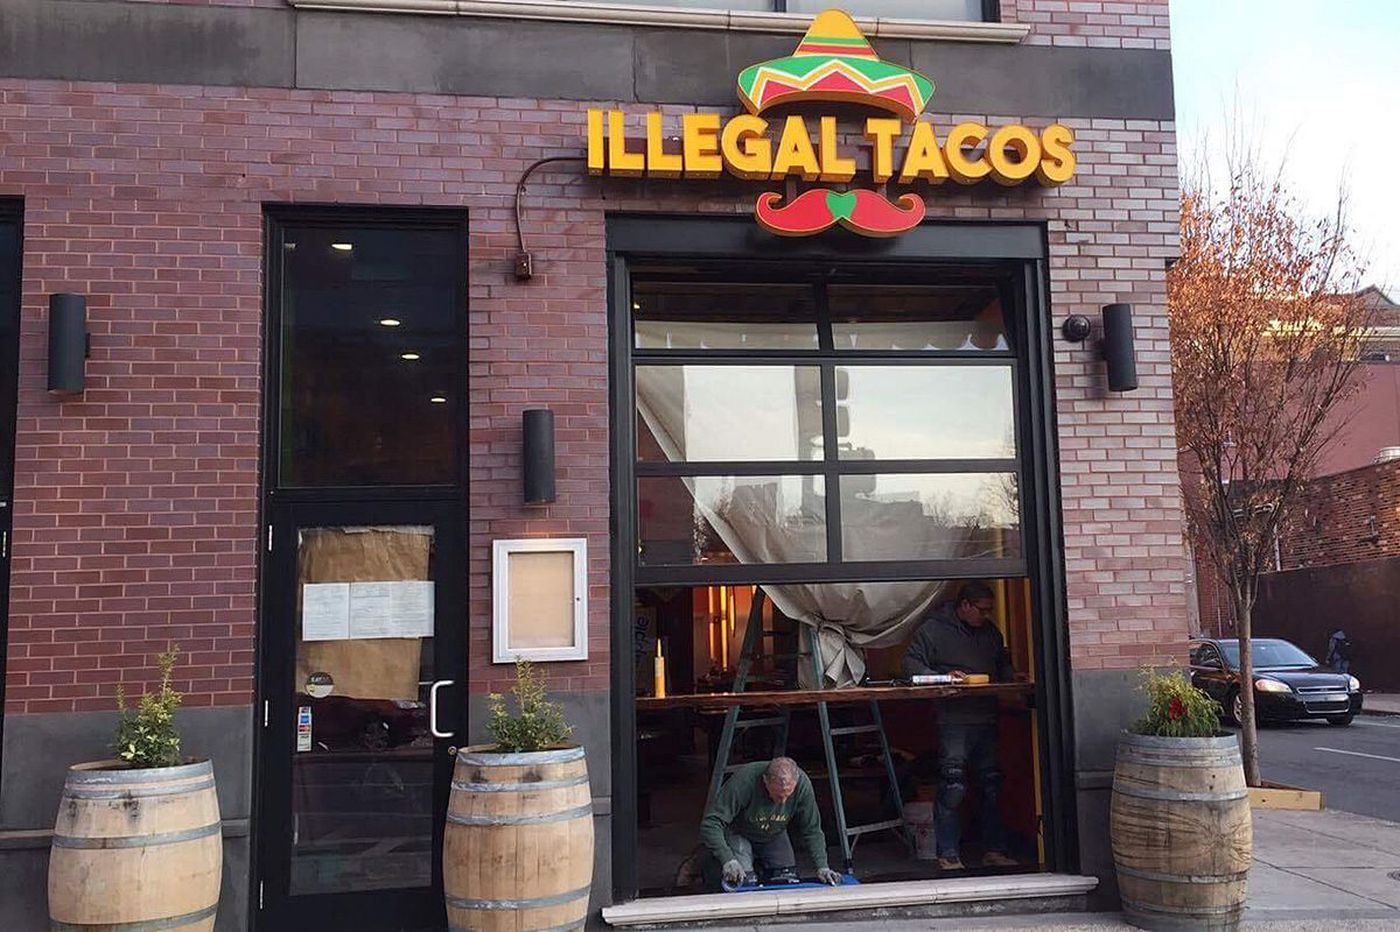 He's calling it Illegal Tacos: 'I know it's risky'